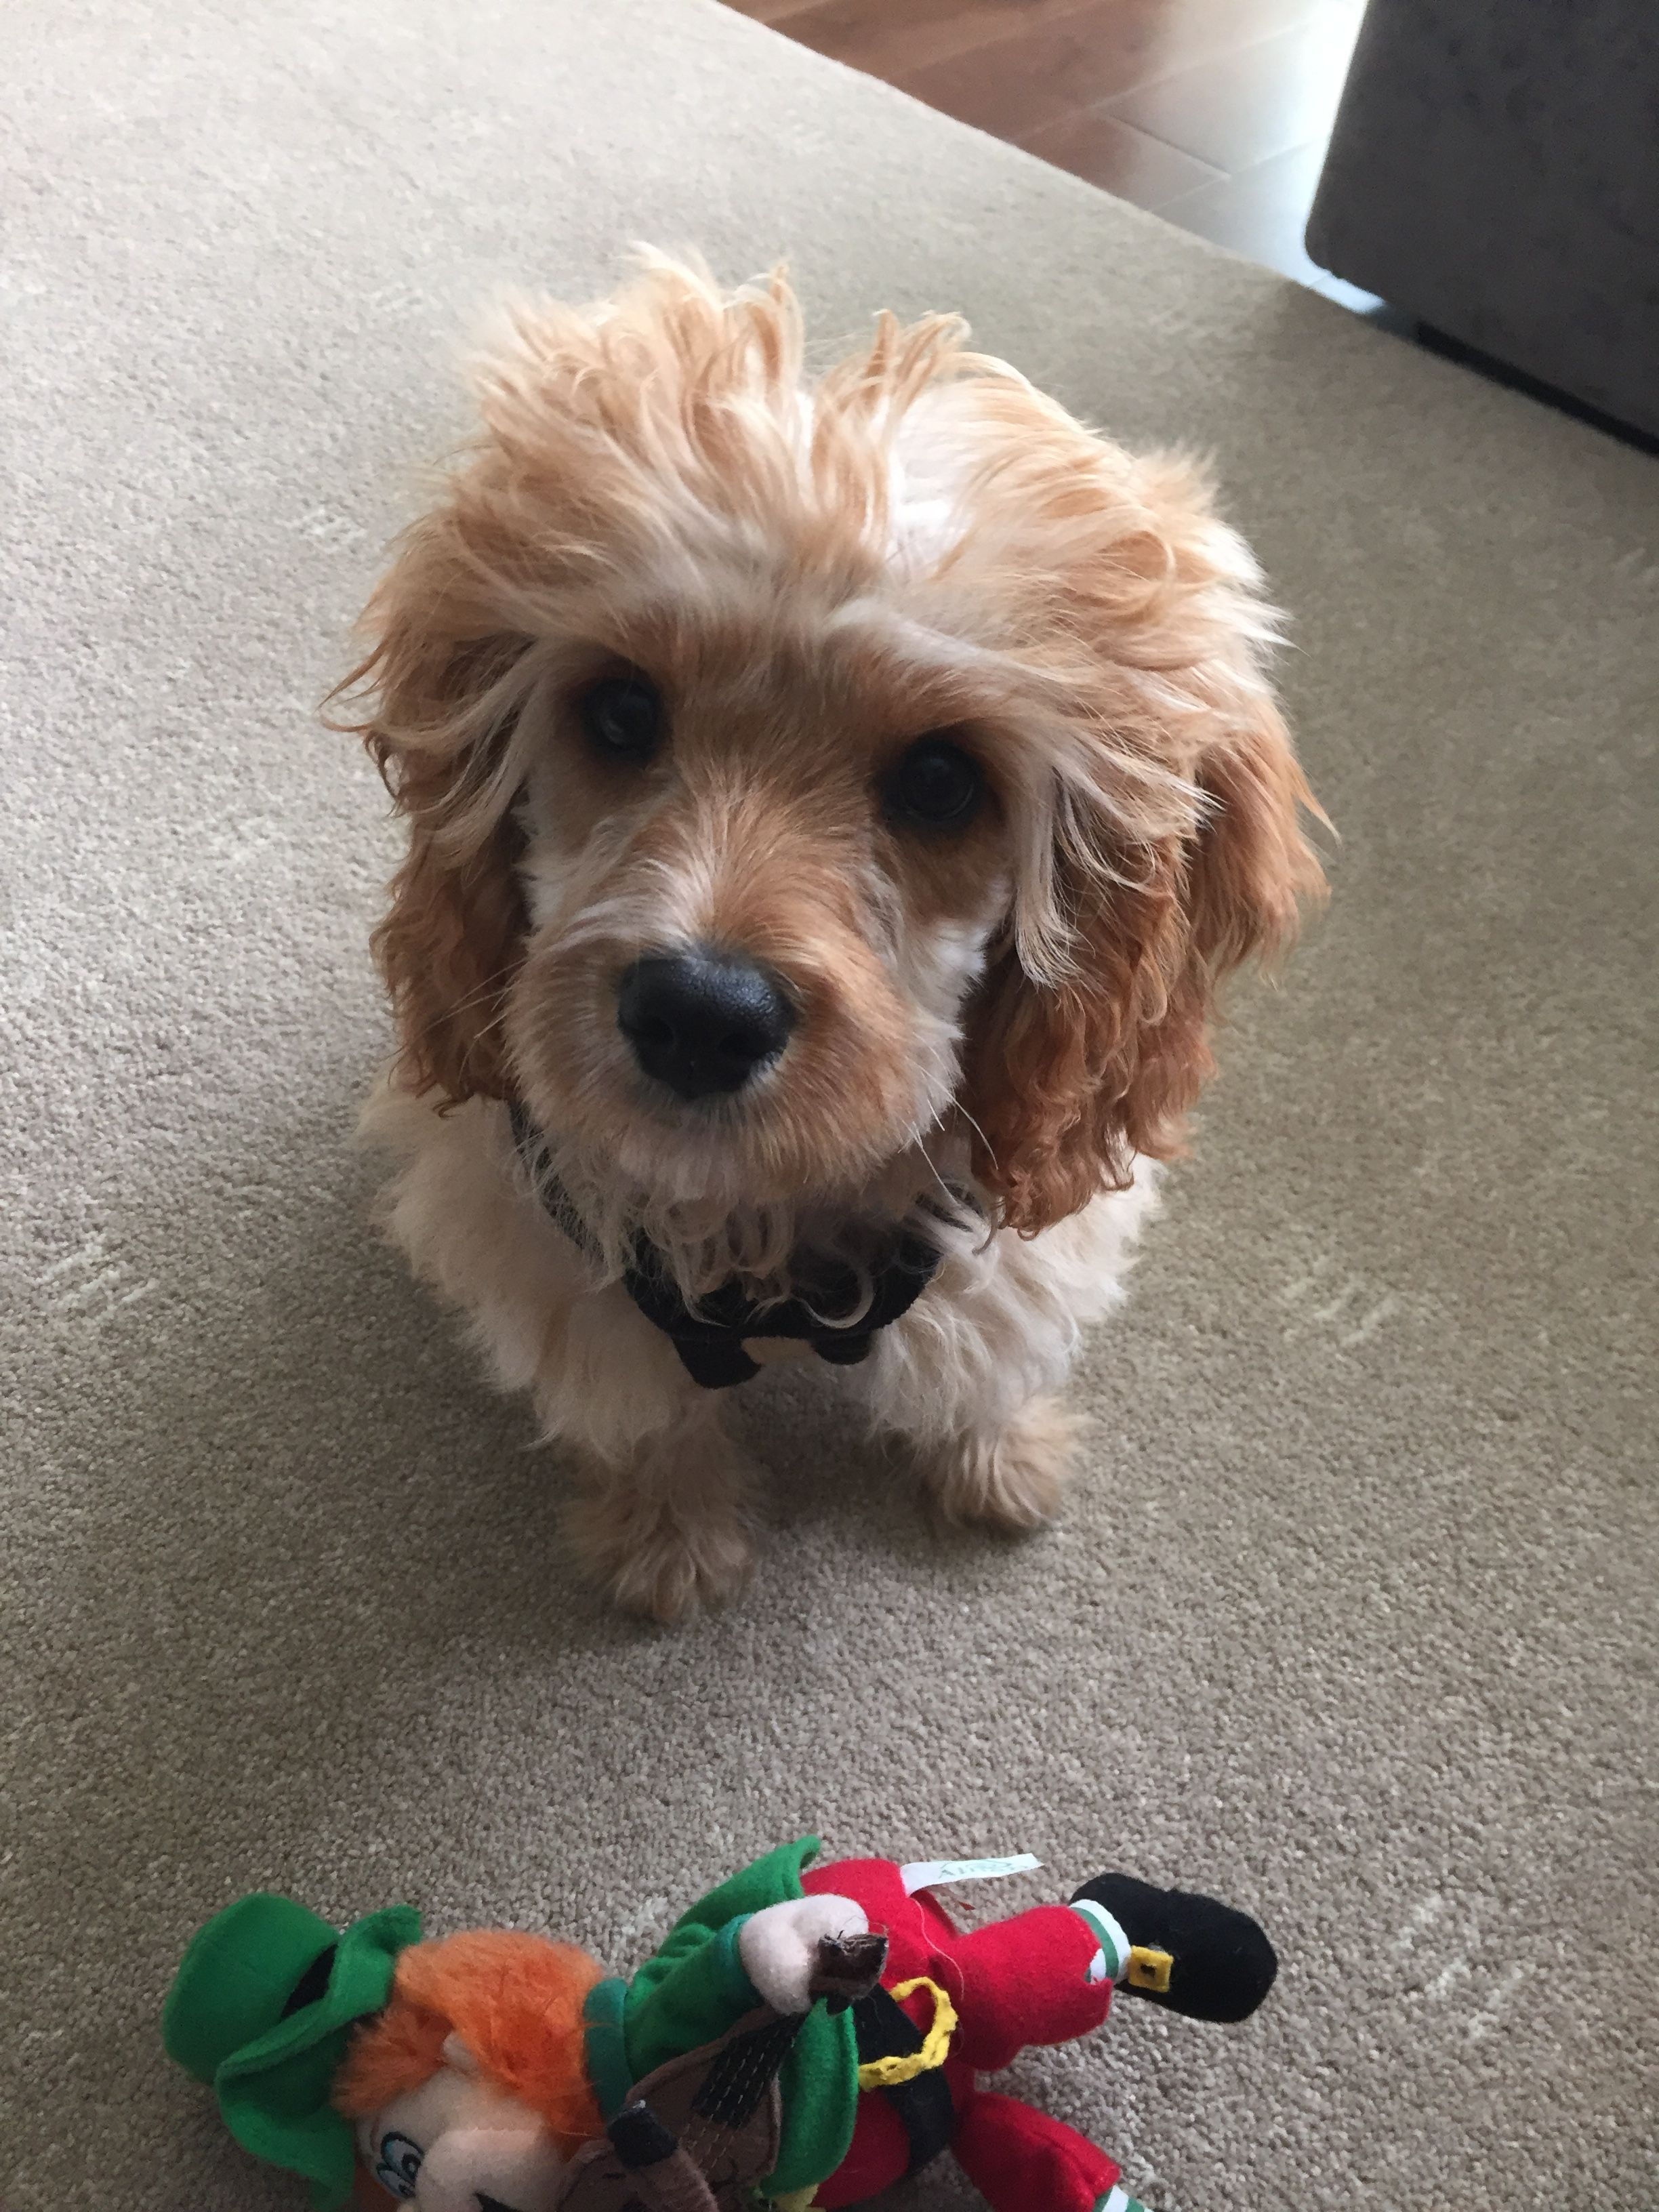 My Cavoodle, Chester. 8 weeks old. Poedel